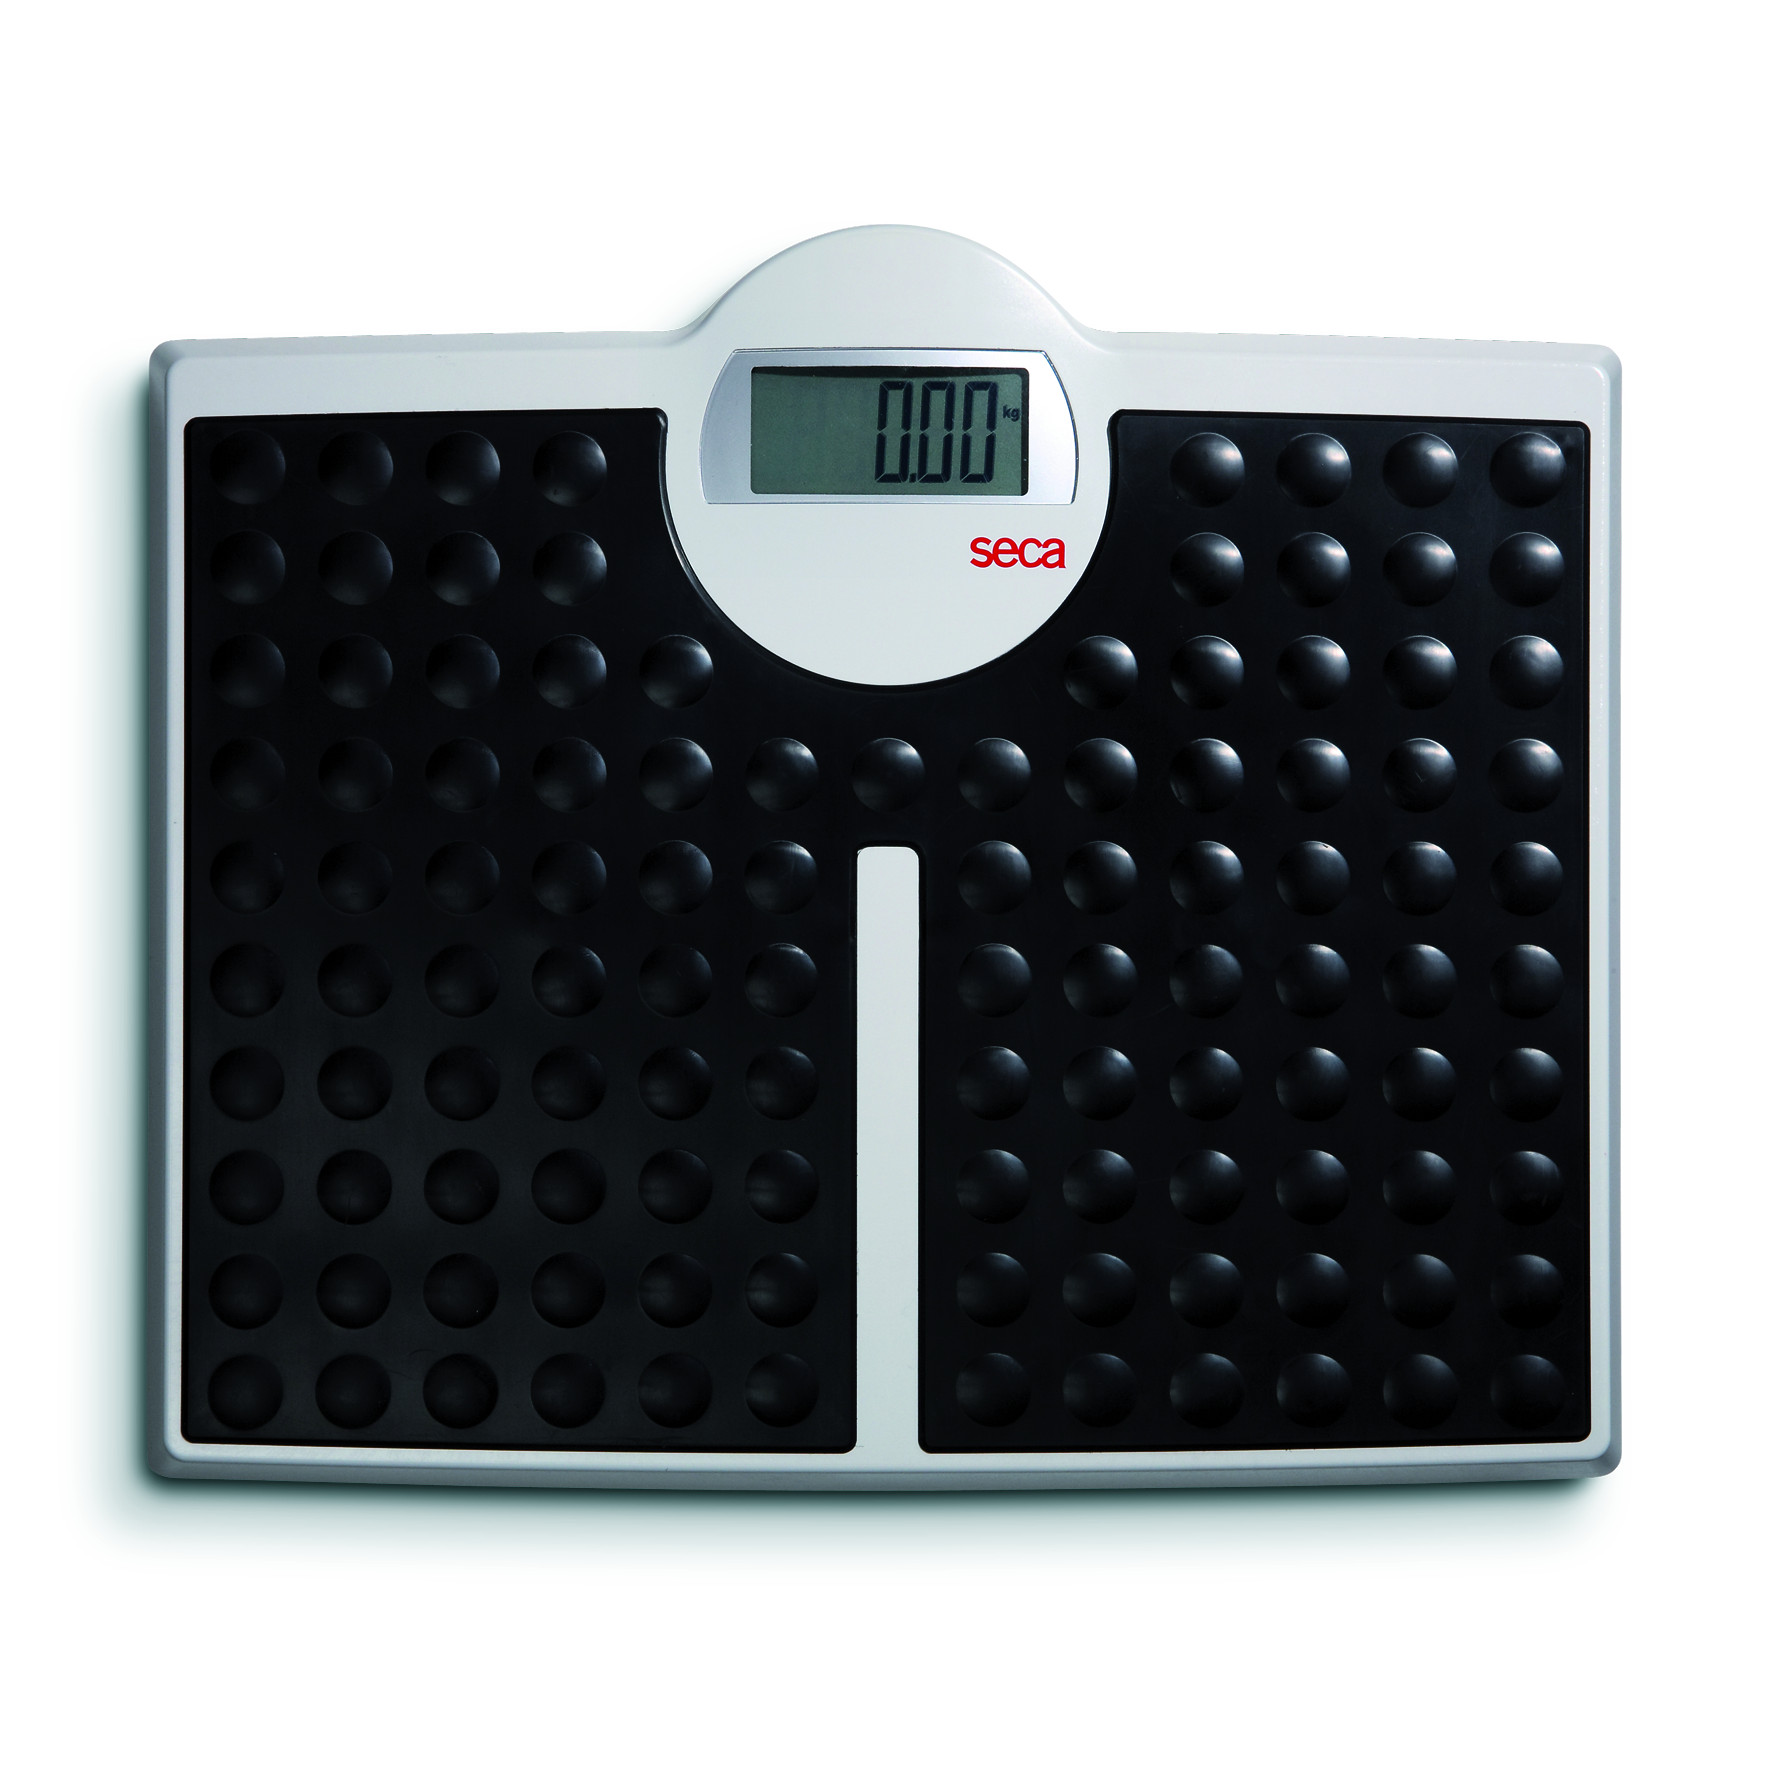 Personal Weighers from weighingscales.com